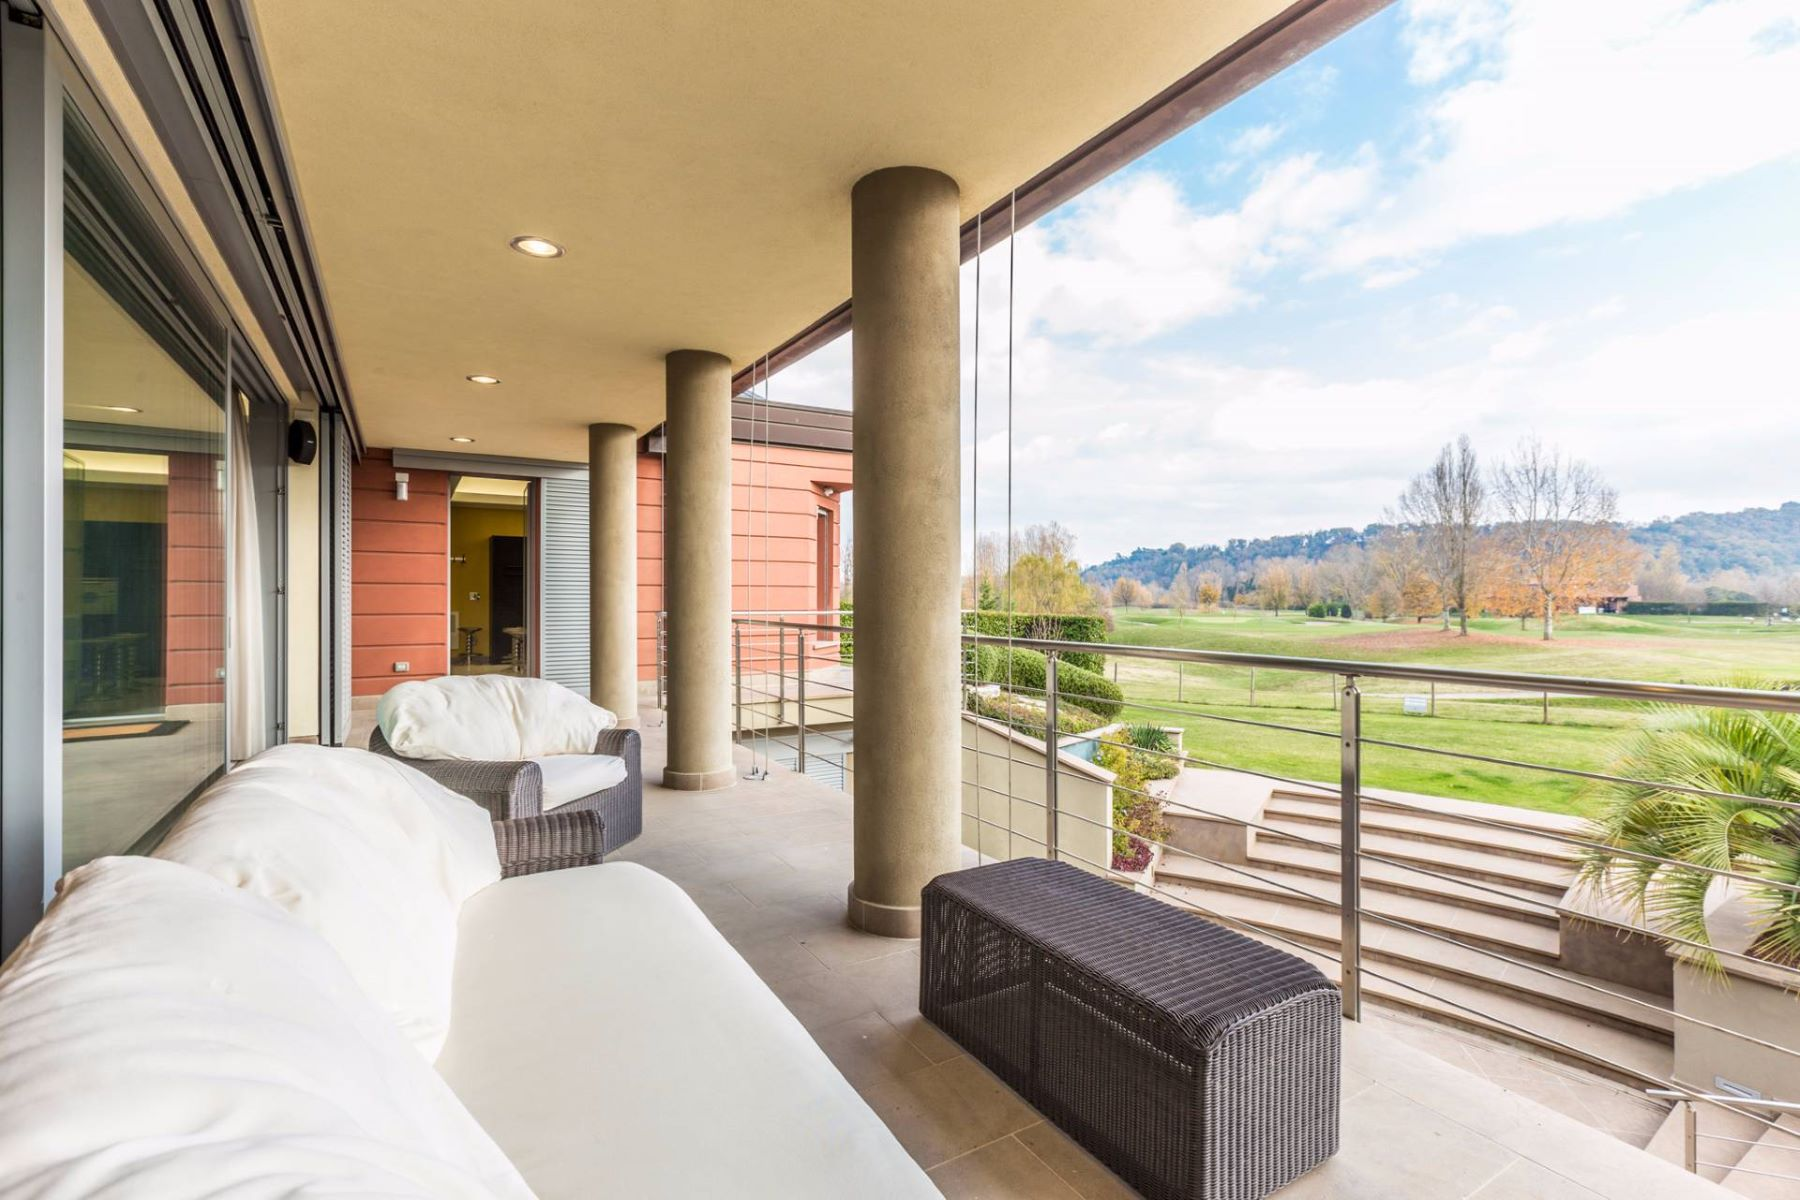 Other Residential Homes for Sale at Beautiful Villa inside Castel San Pietro Golf Resort Castel San Pietro Terme, Bologna Italy